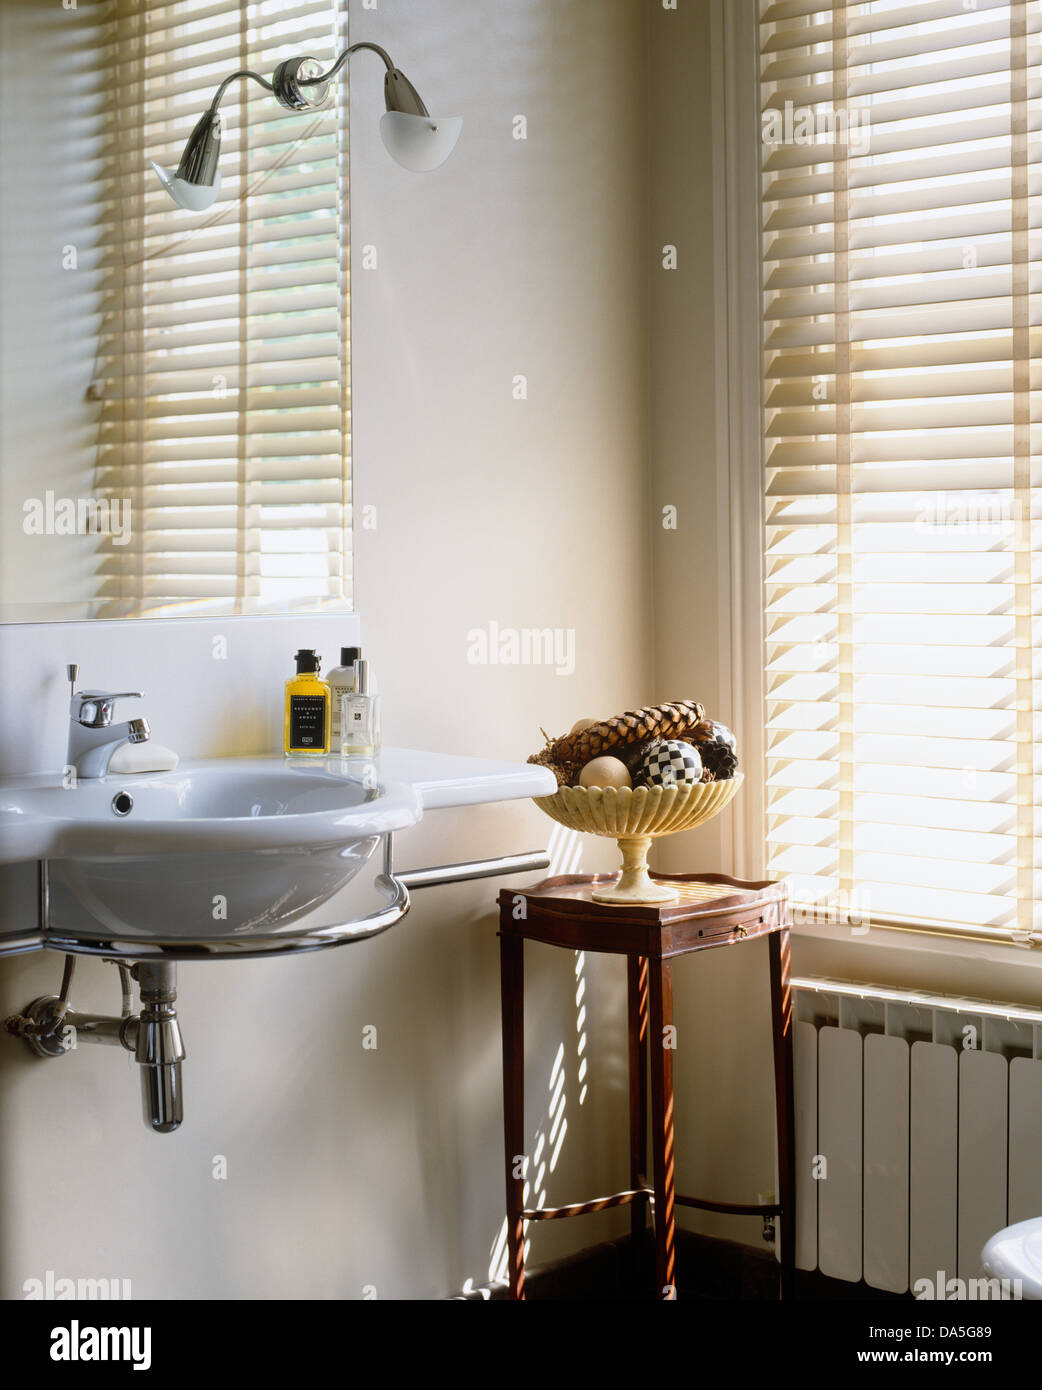 Stainless steel ornaments - Mirror Above Small Washbasin On Stainless Steel Shelf In Modern Bathroom With Vase Of Ornaments On Wooden Side Table